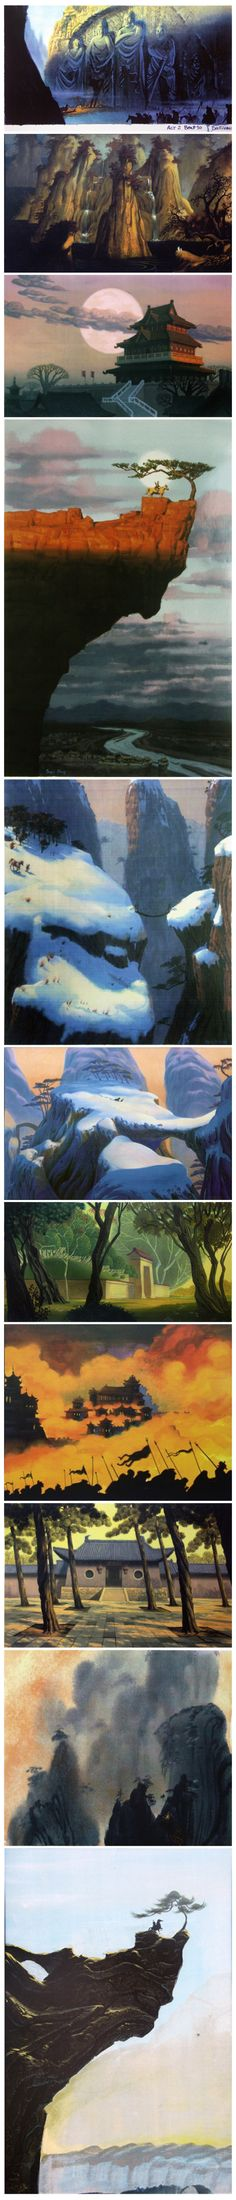 mulan findings 5 -- here is some more visual development artwork for disney's MULAN. it was done sometime early 1994